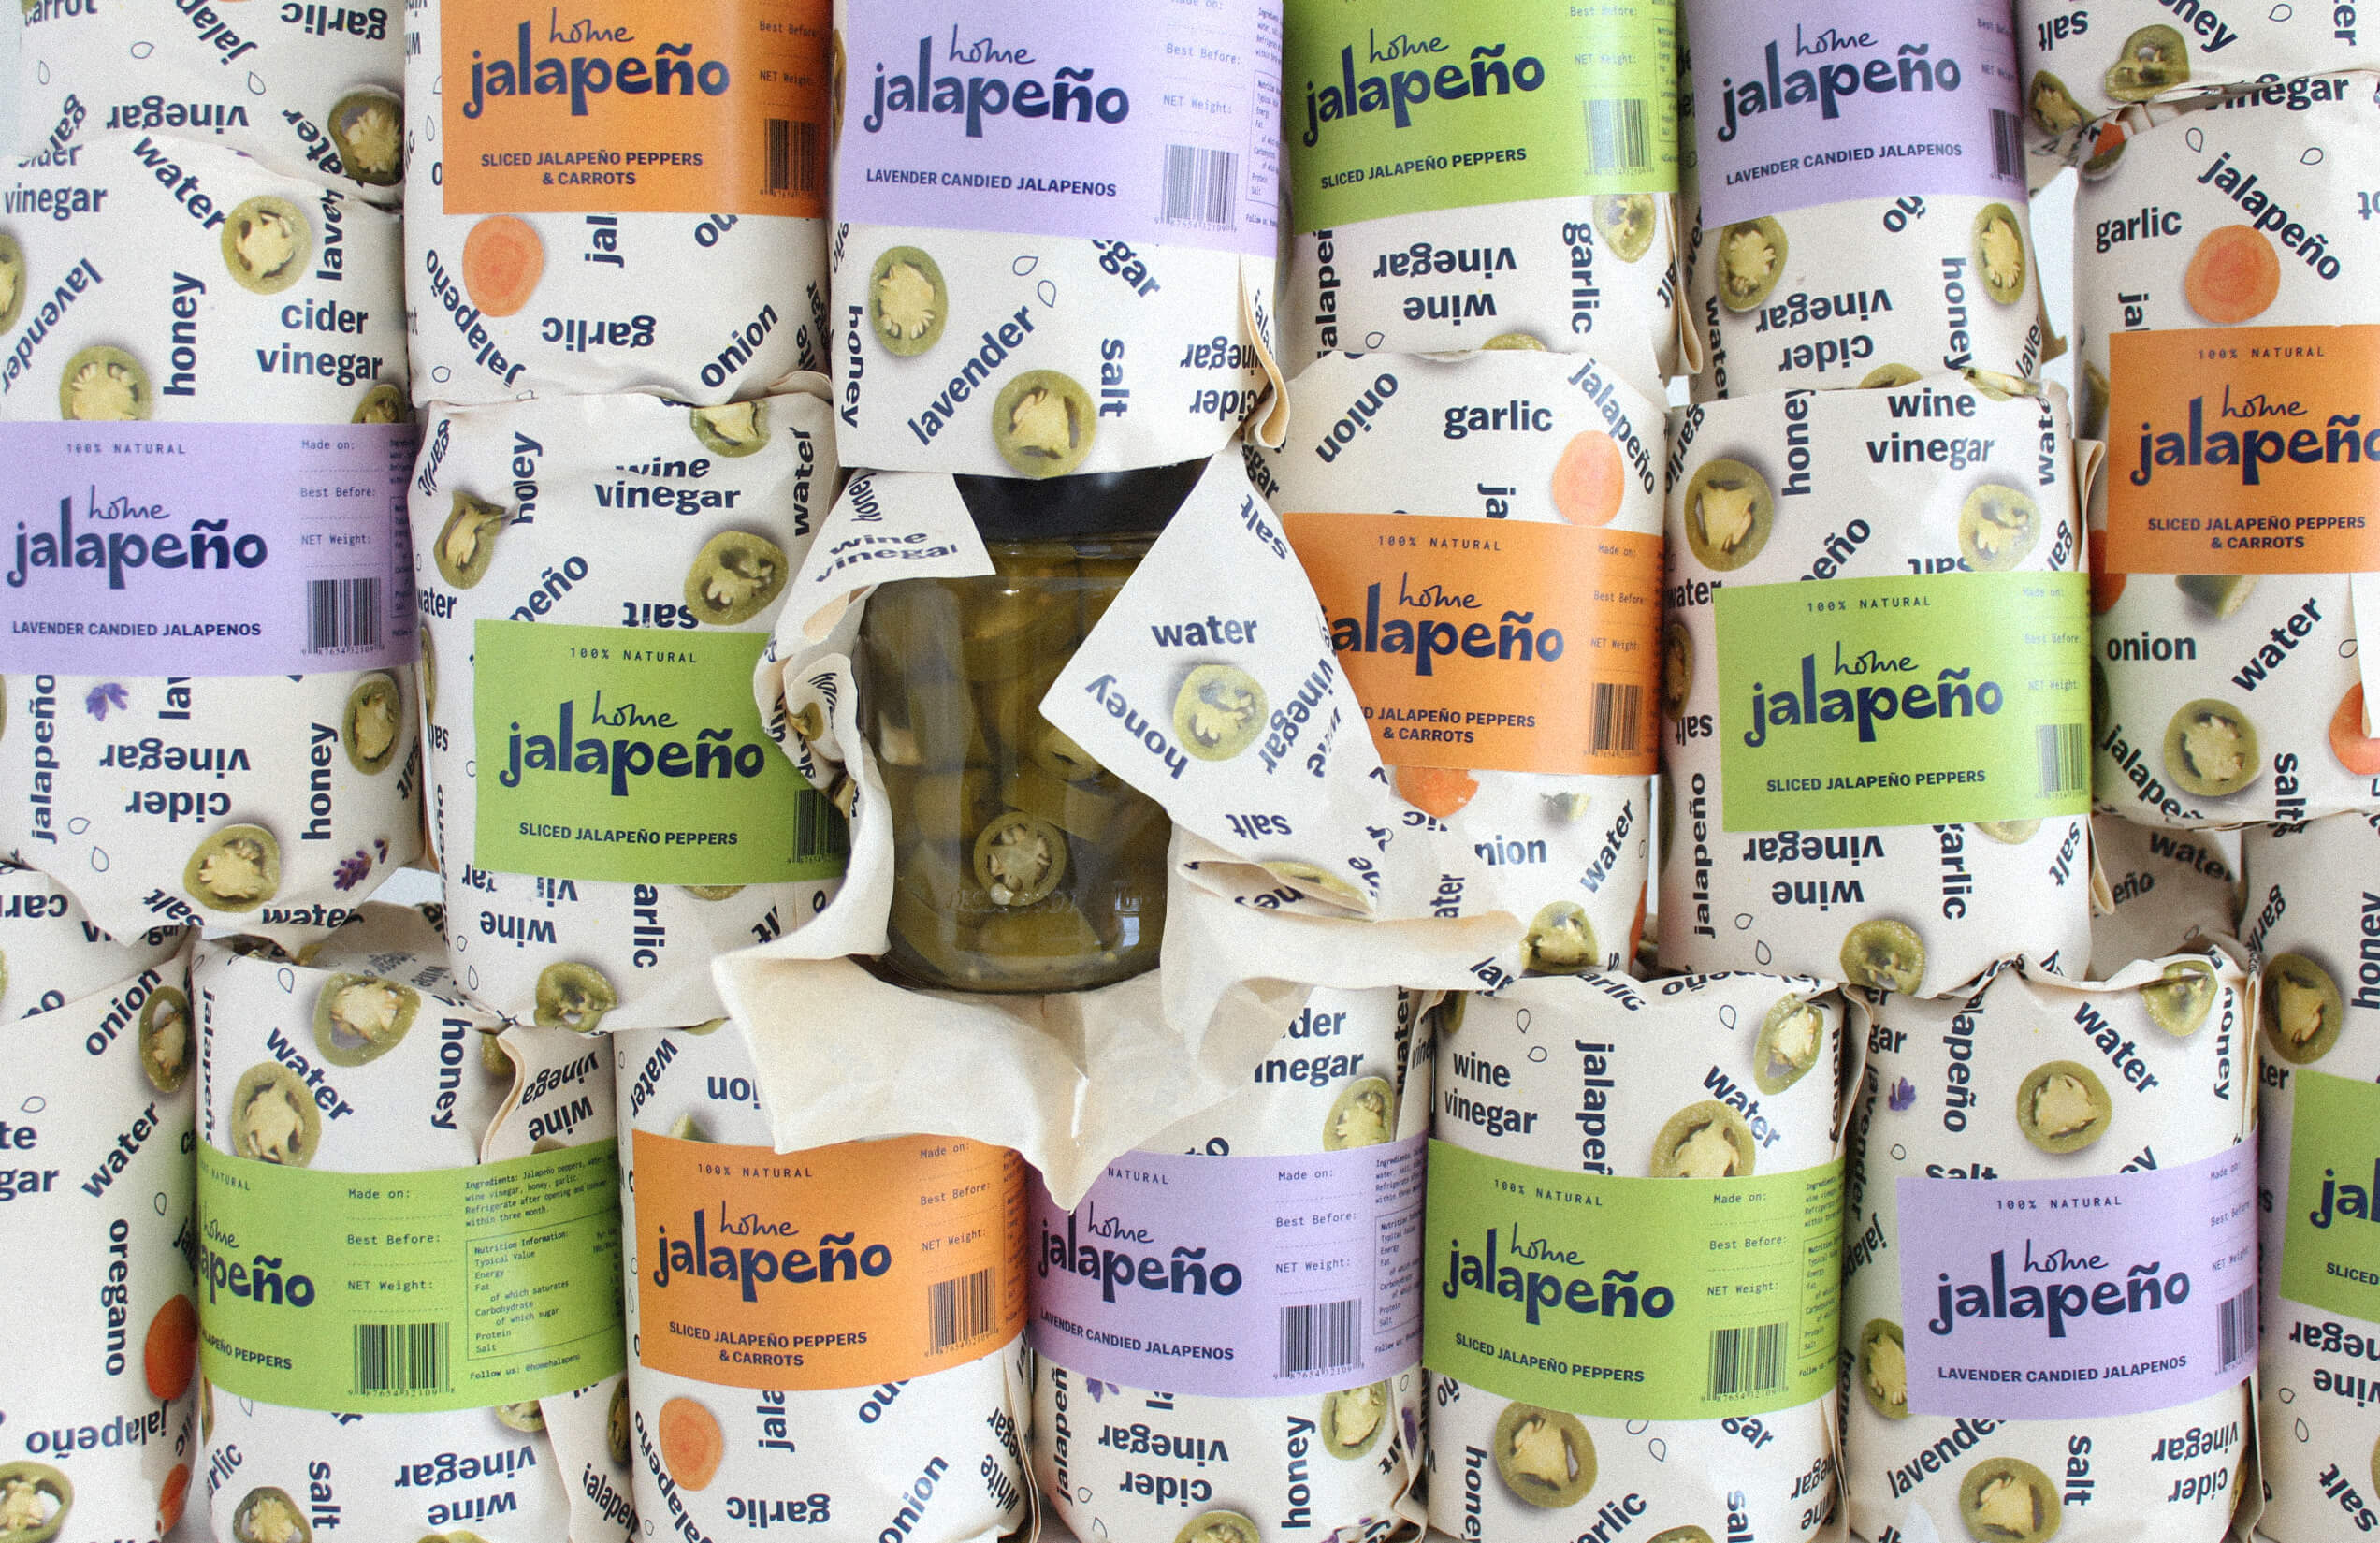 Home Jalapeño Brand and Packaging Design Created by Thisis Peas